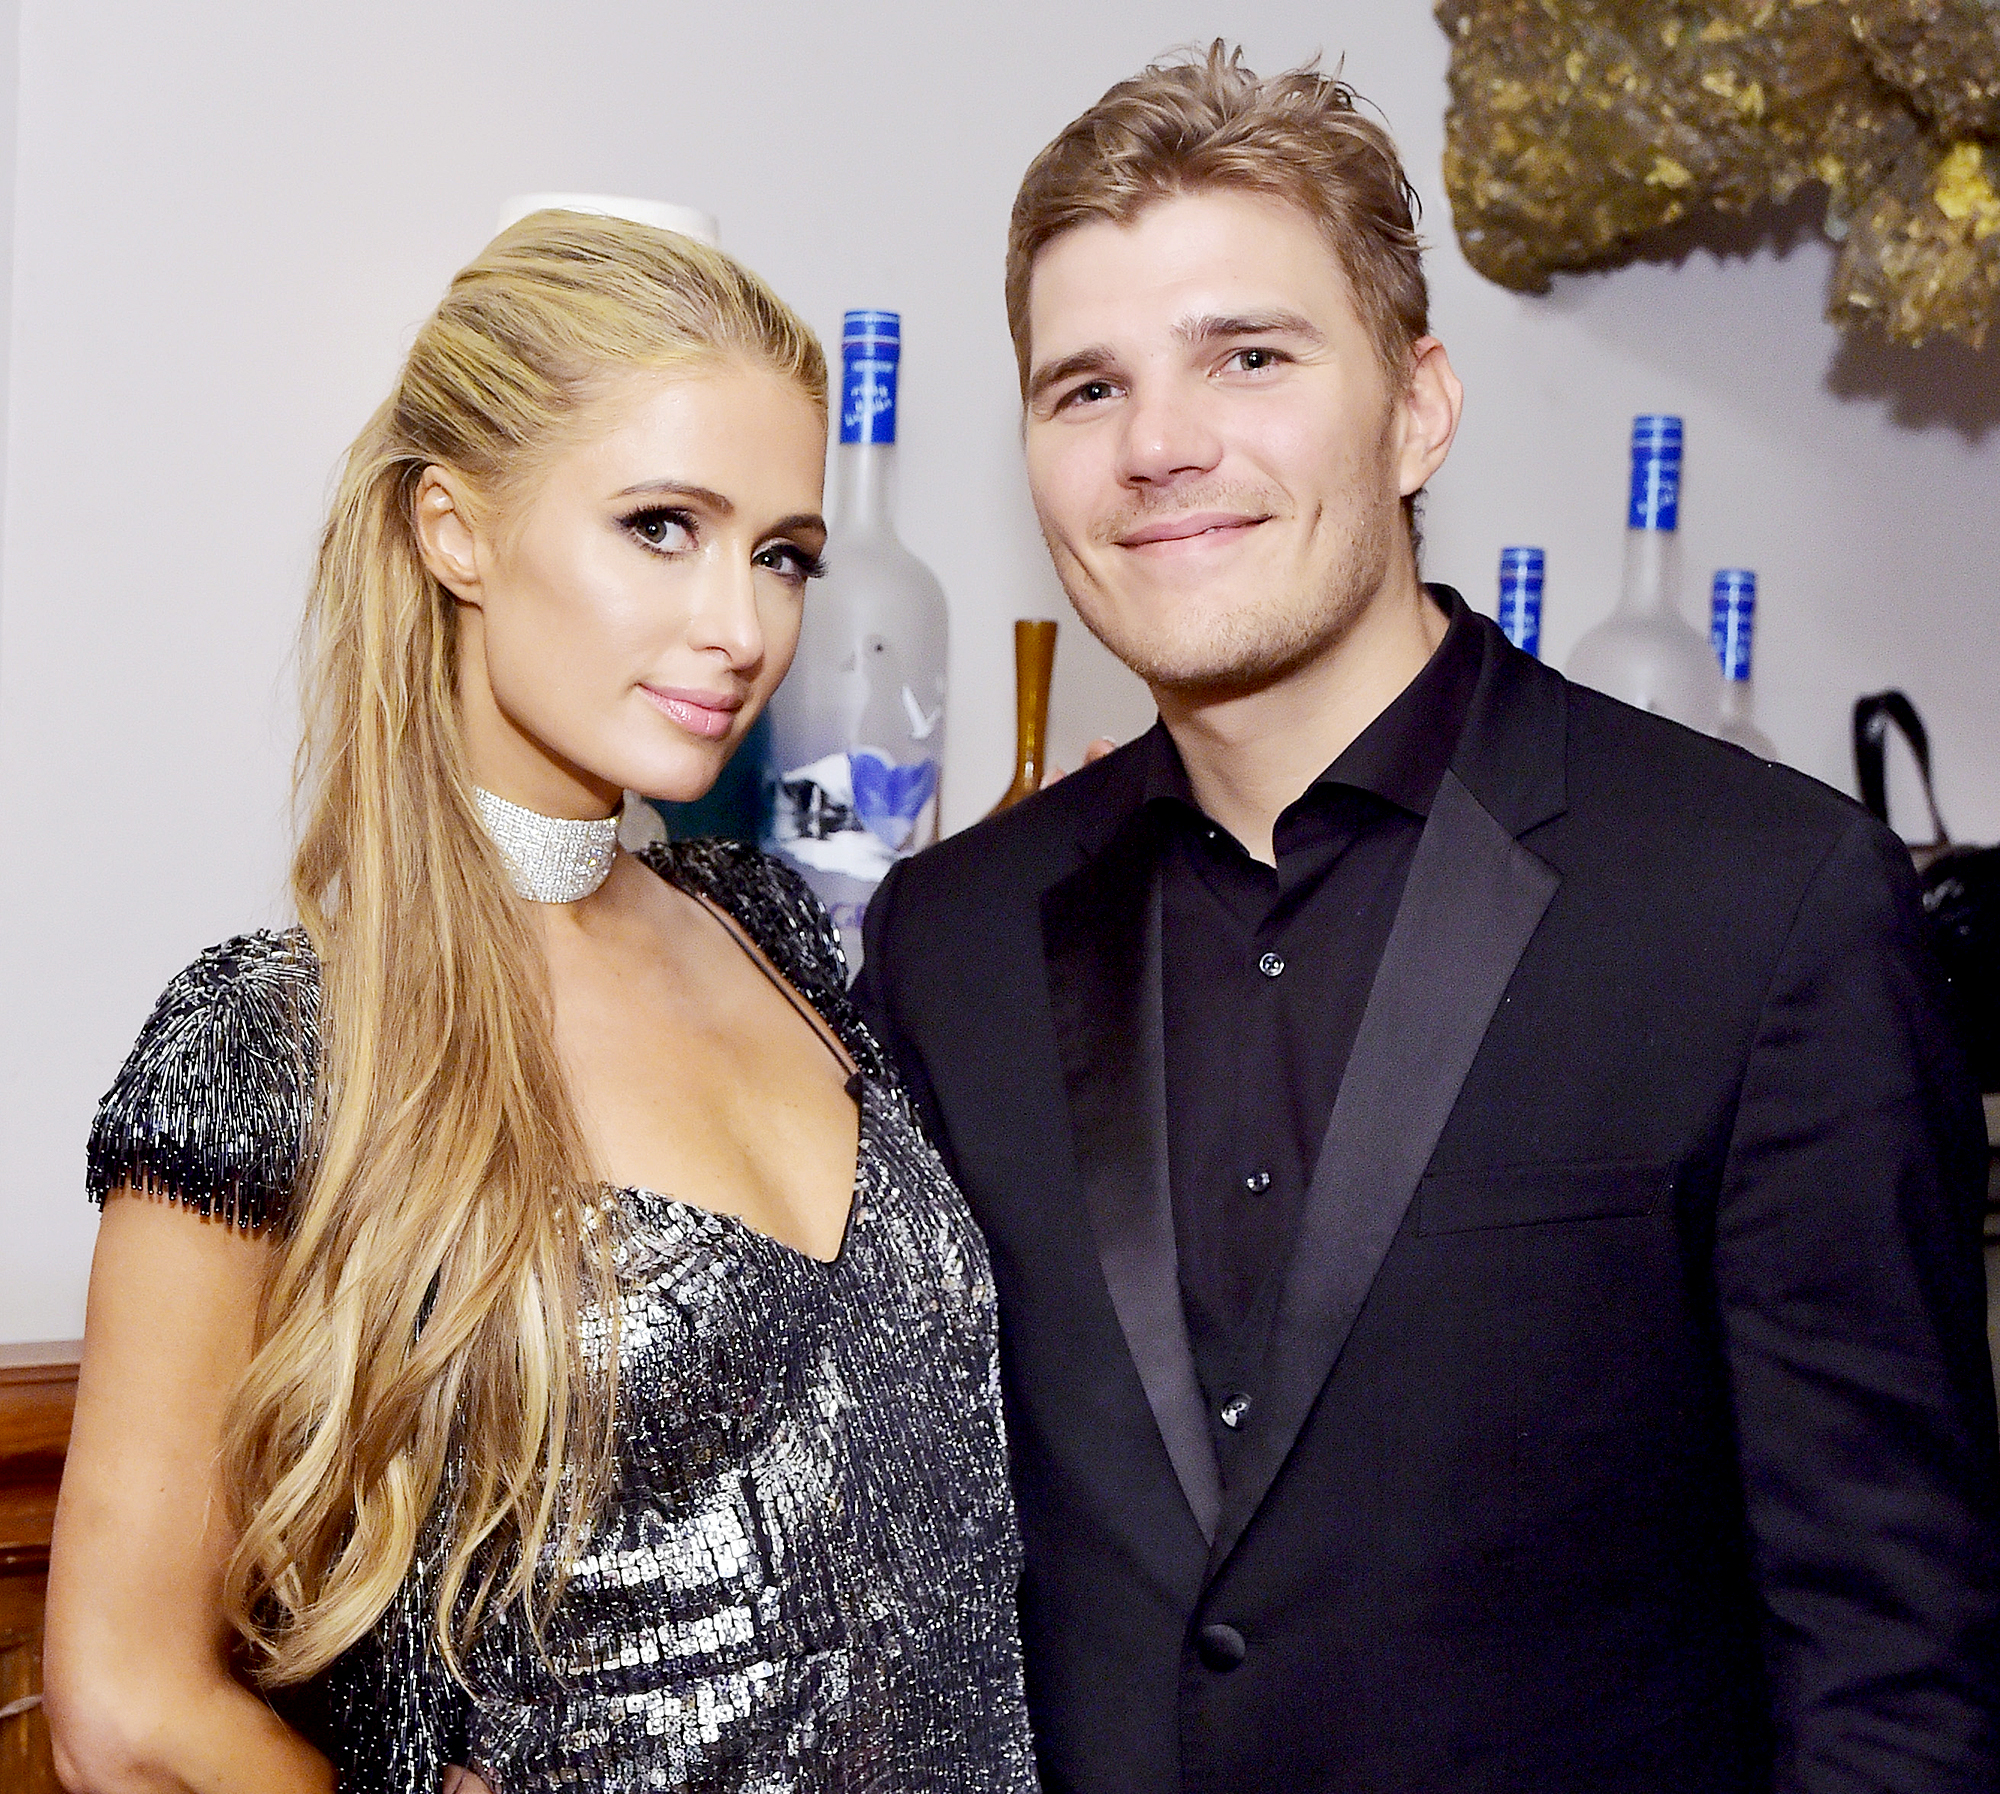 """Paris-Hilton-and-Chris-Zylka-split - Paris Hilton and Chris Zylka at """"THE DEATH AND LIFE OF JOHN F. DONOVAN"""" premiere party hosted by GREY GOOSE Vodka and Soho House at Soho House Toronto on September 10, 2018 in Toronto, Canada."""